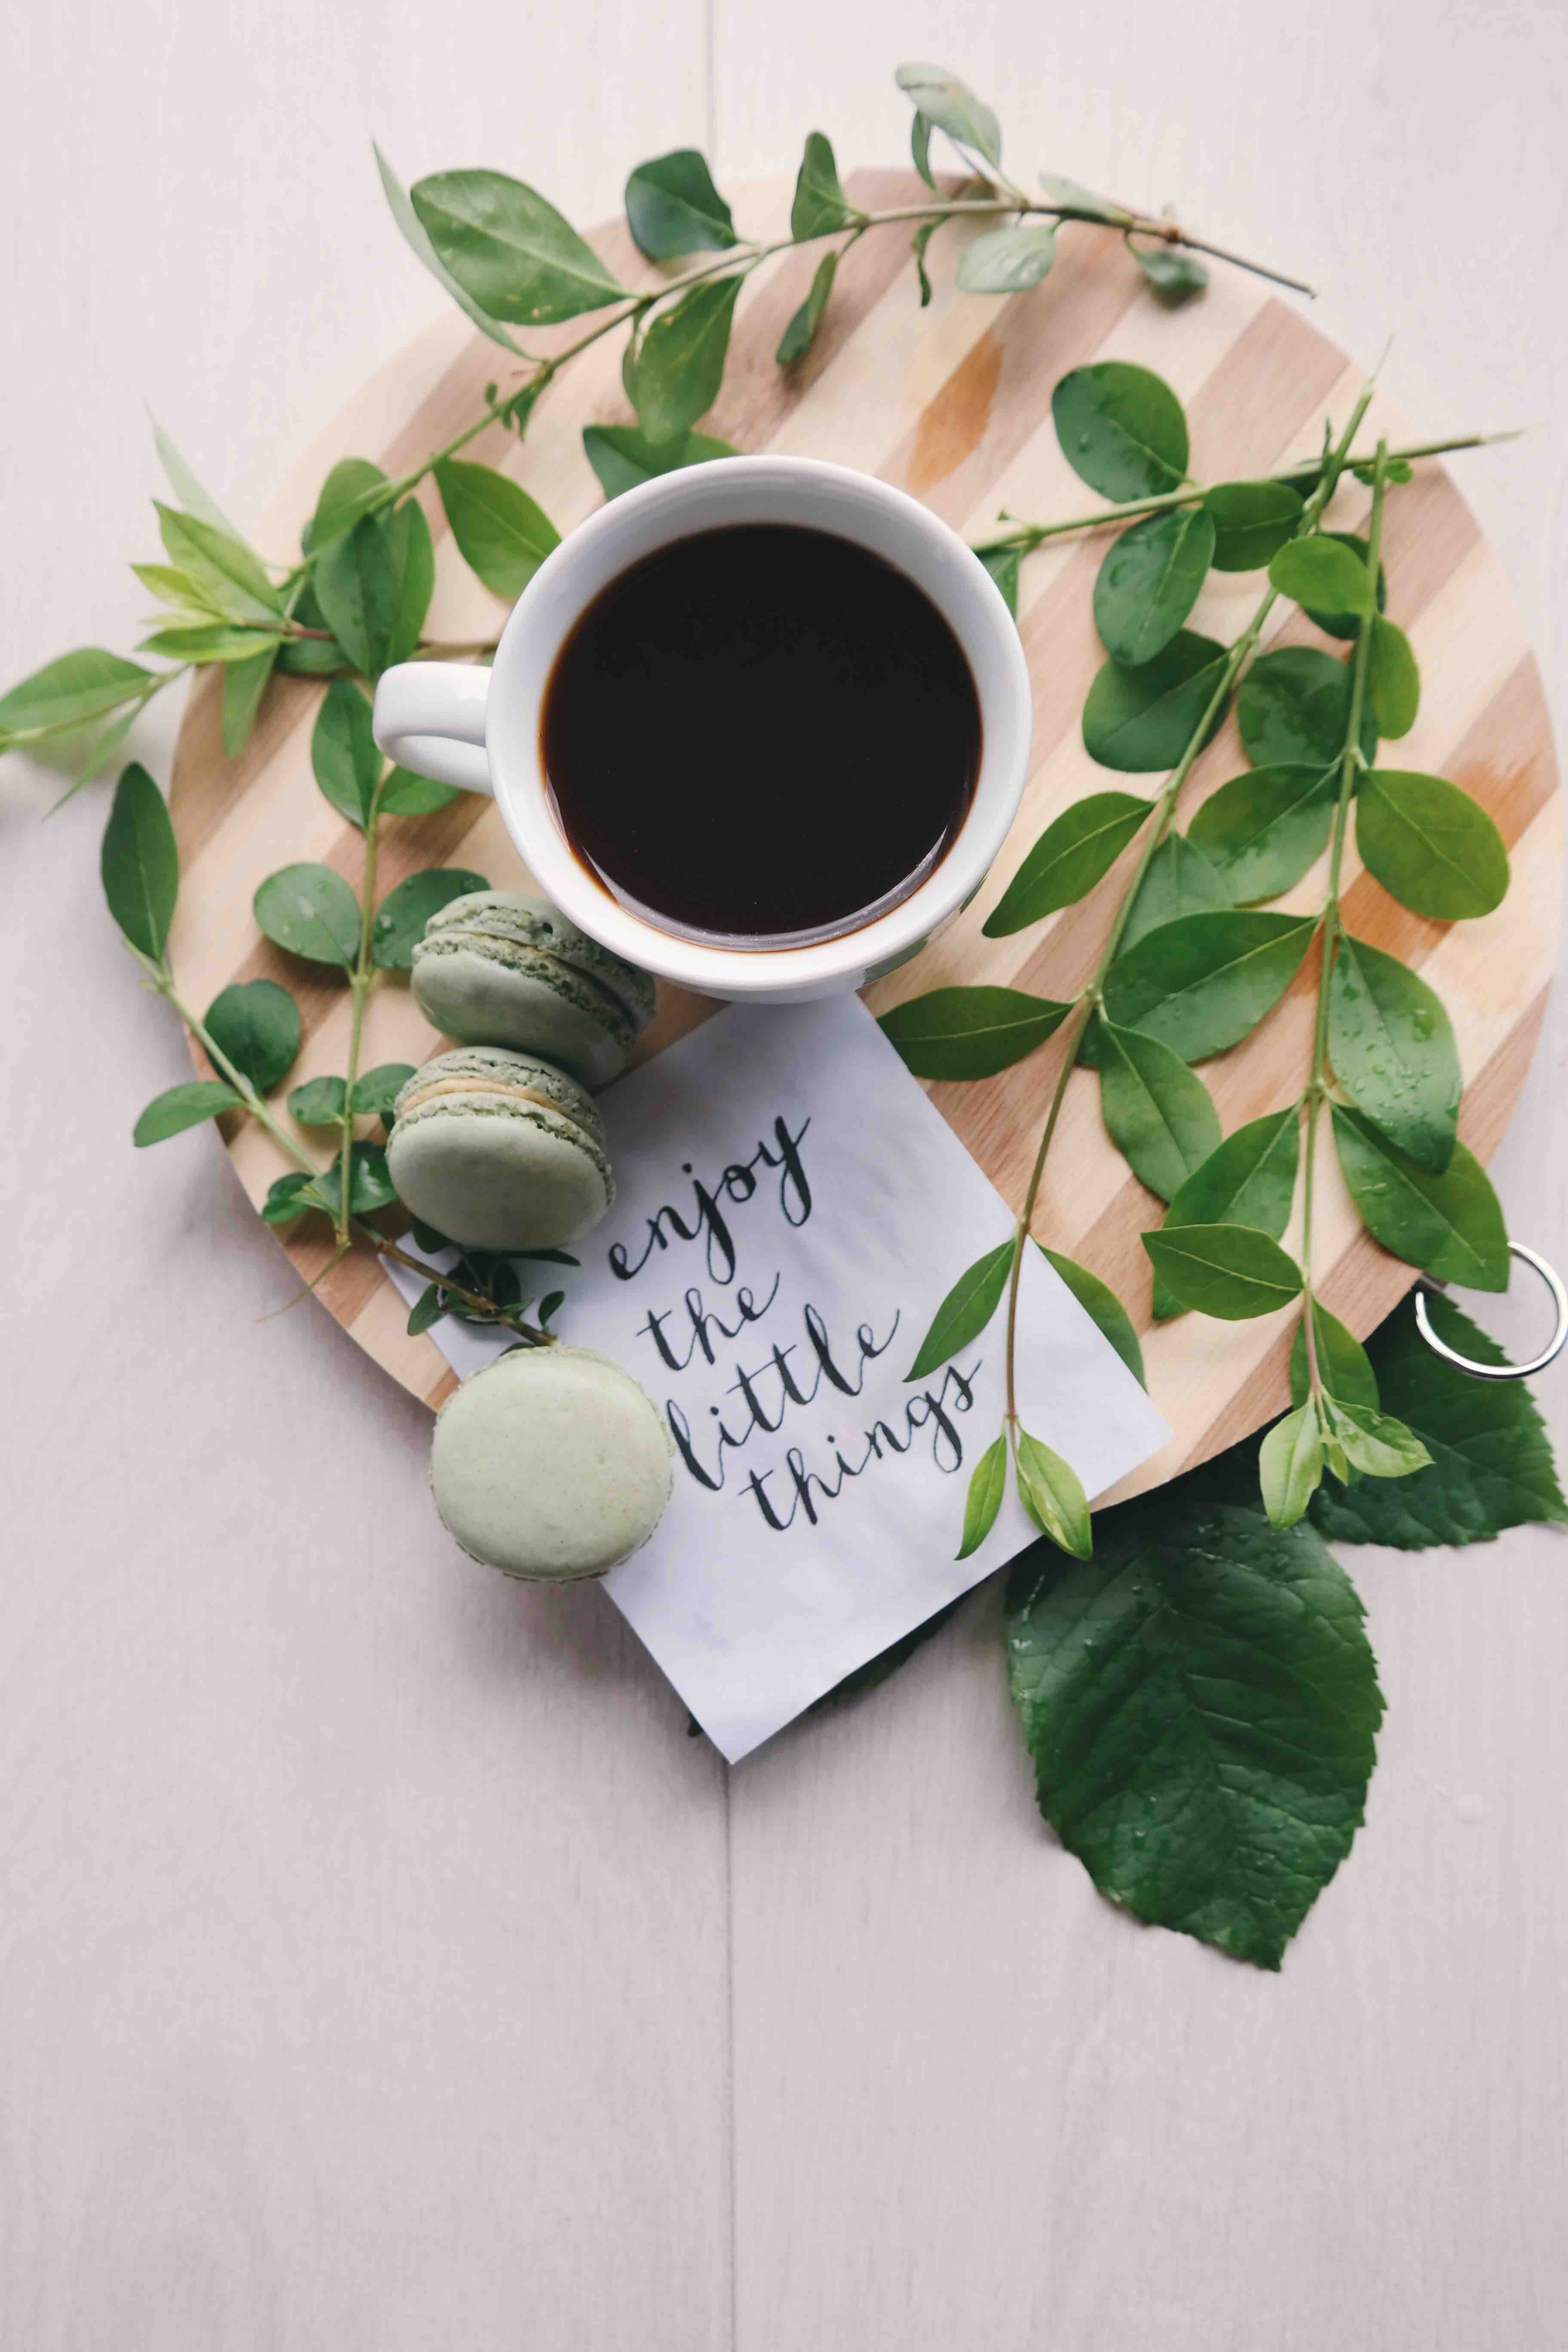 """cup of coffee on a wood board, with green leaves, macarons and a napkin that says """"Enjoy the little things."""""""